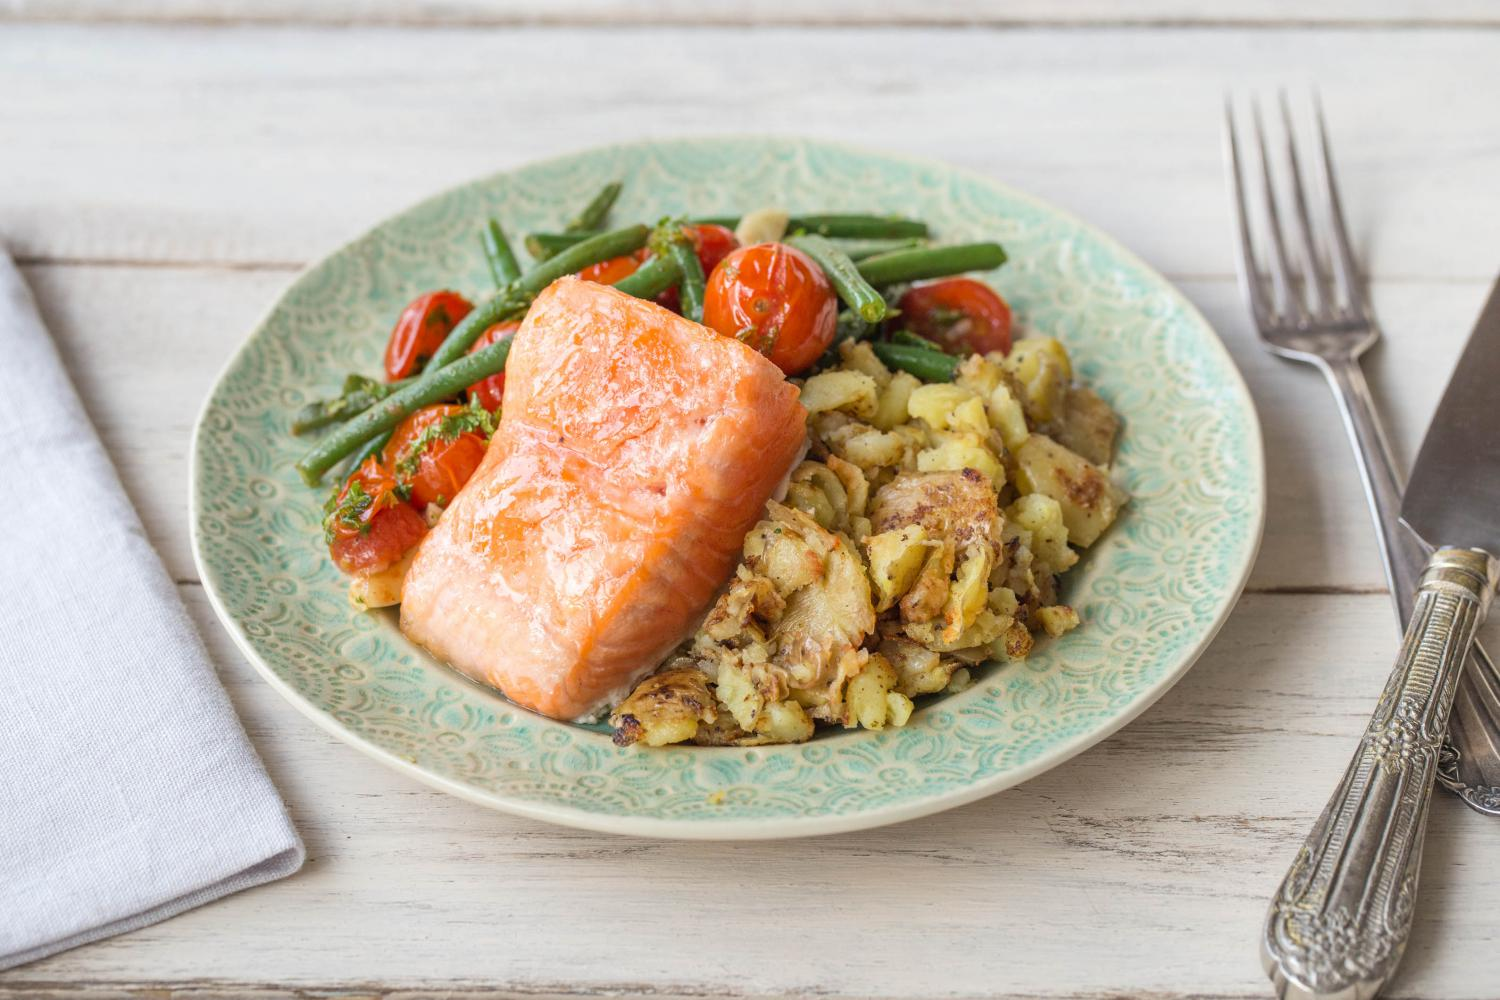 https://cdn.hellofresh.com/ca/cms/press/ROASTED_SALMON_WITH_BURST_CHERRY_TOMATOES_&_GREEN_BEANS